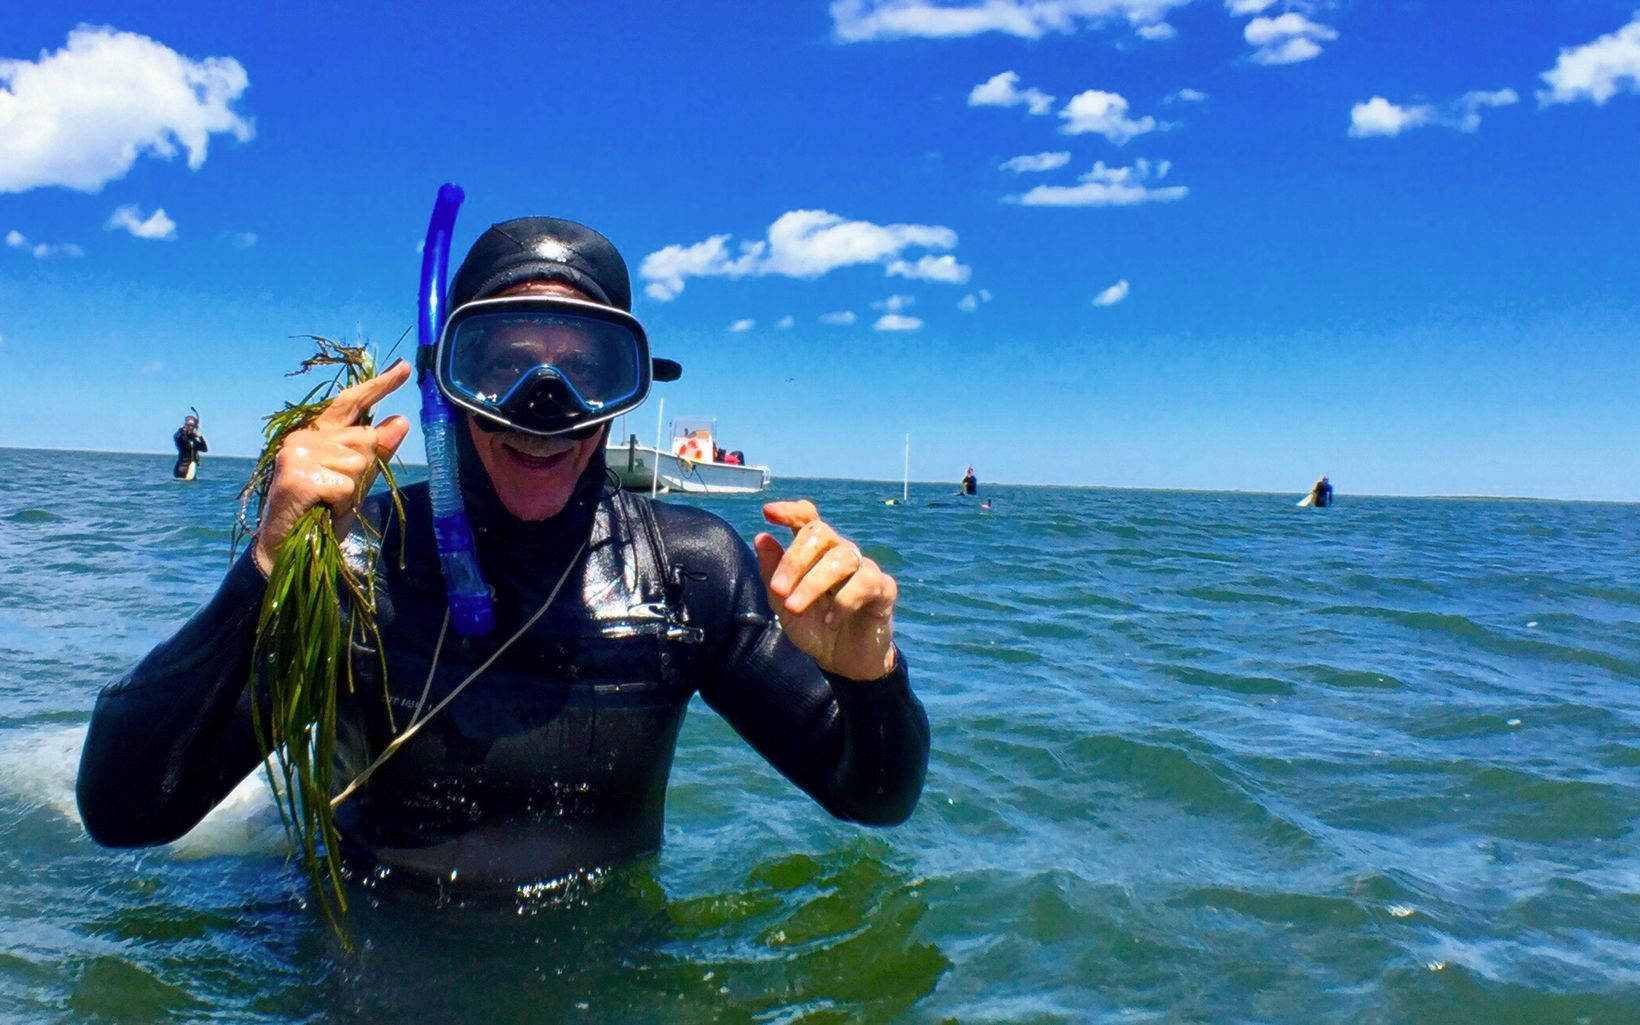 Volunteer Al McKegg collects eelgrass shoots in South Bay, Eastern Shore, Virginia.